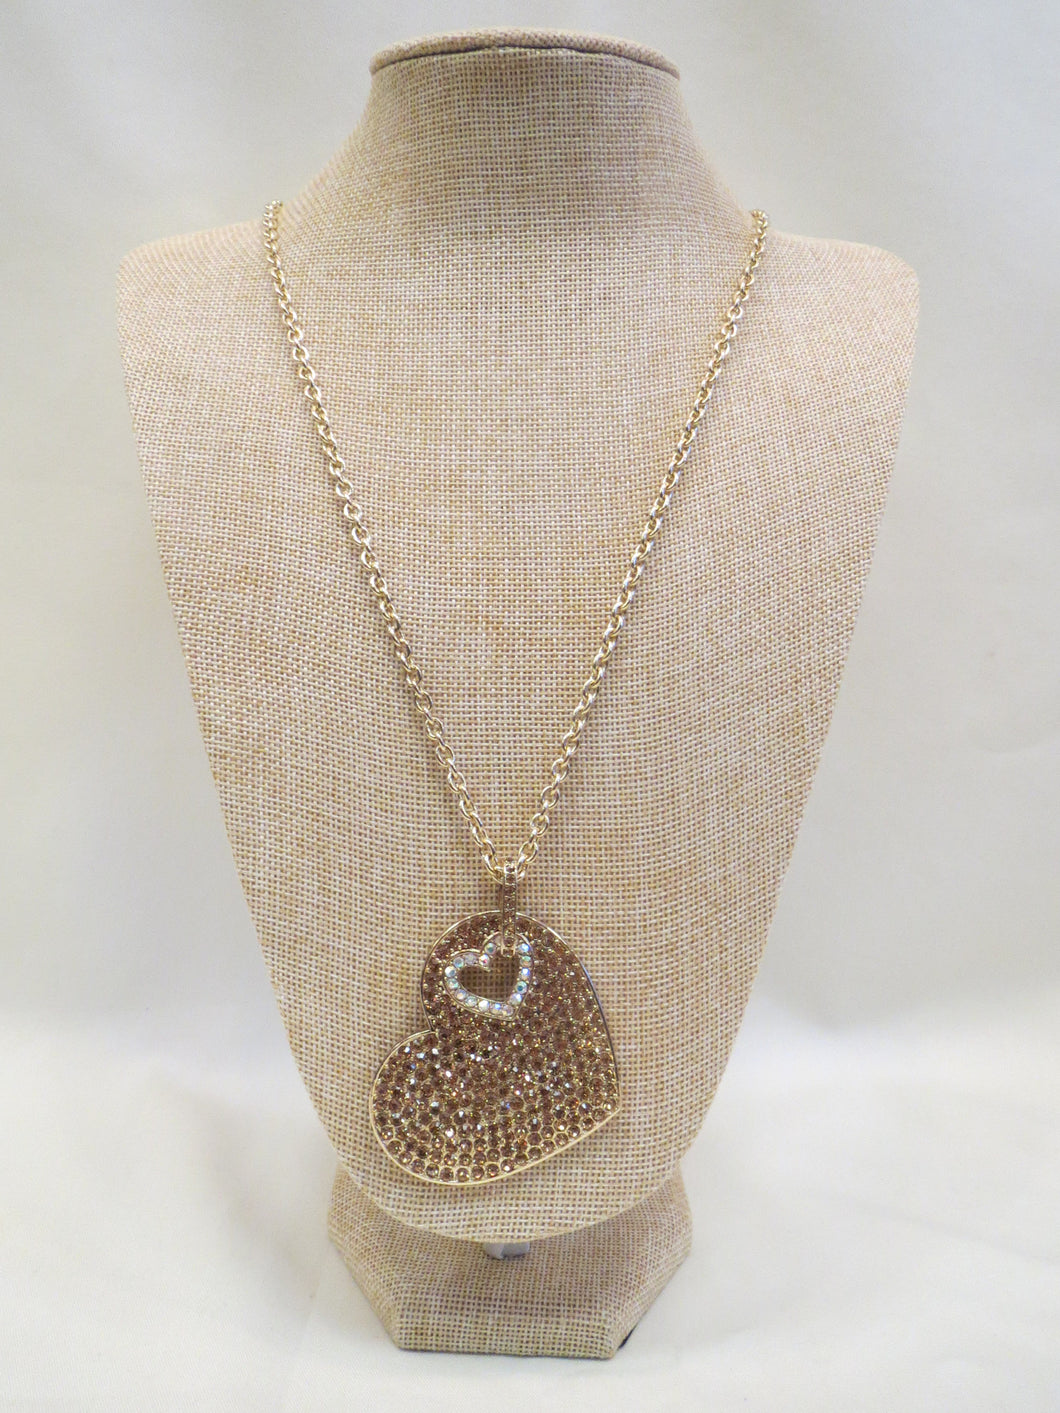 ADO | Crystal Heart Necklace Gold - All Decd Out